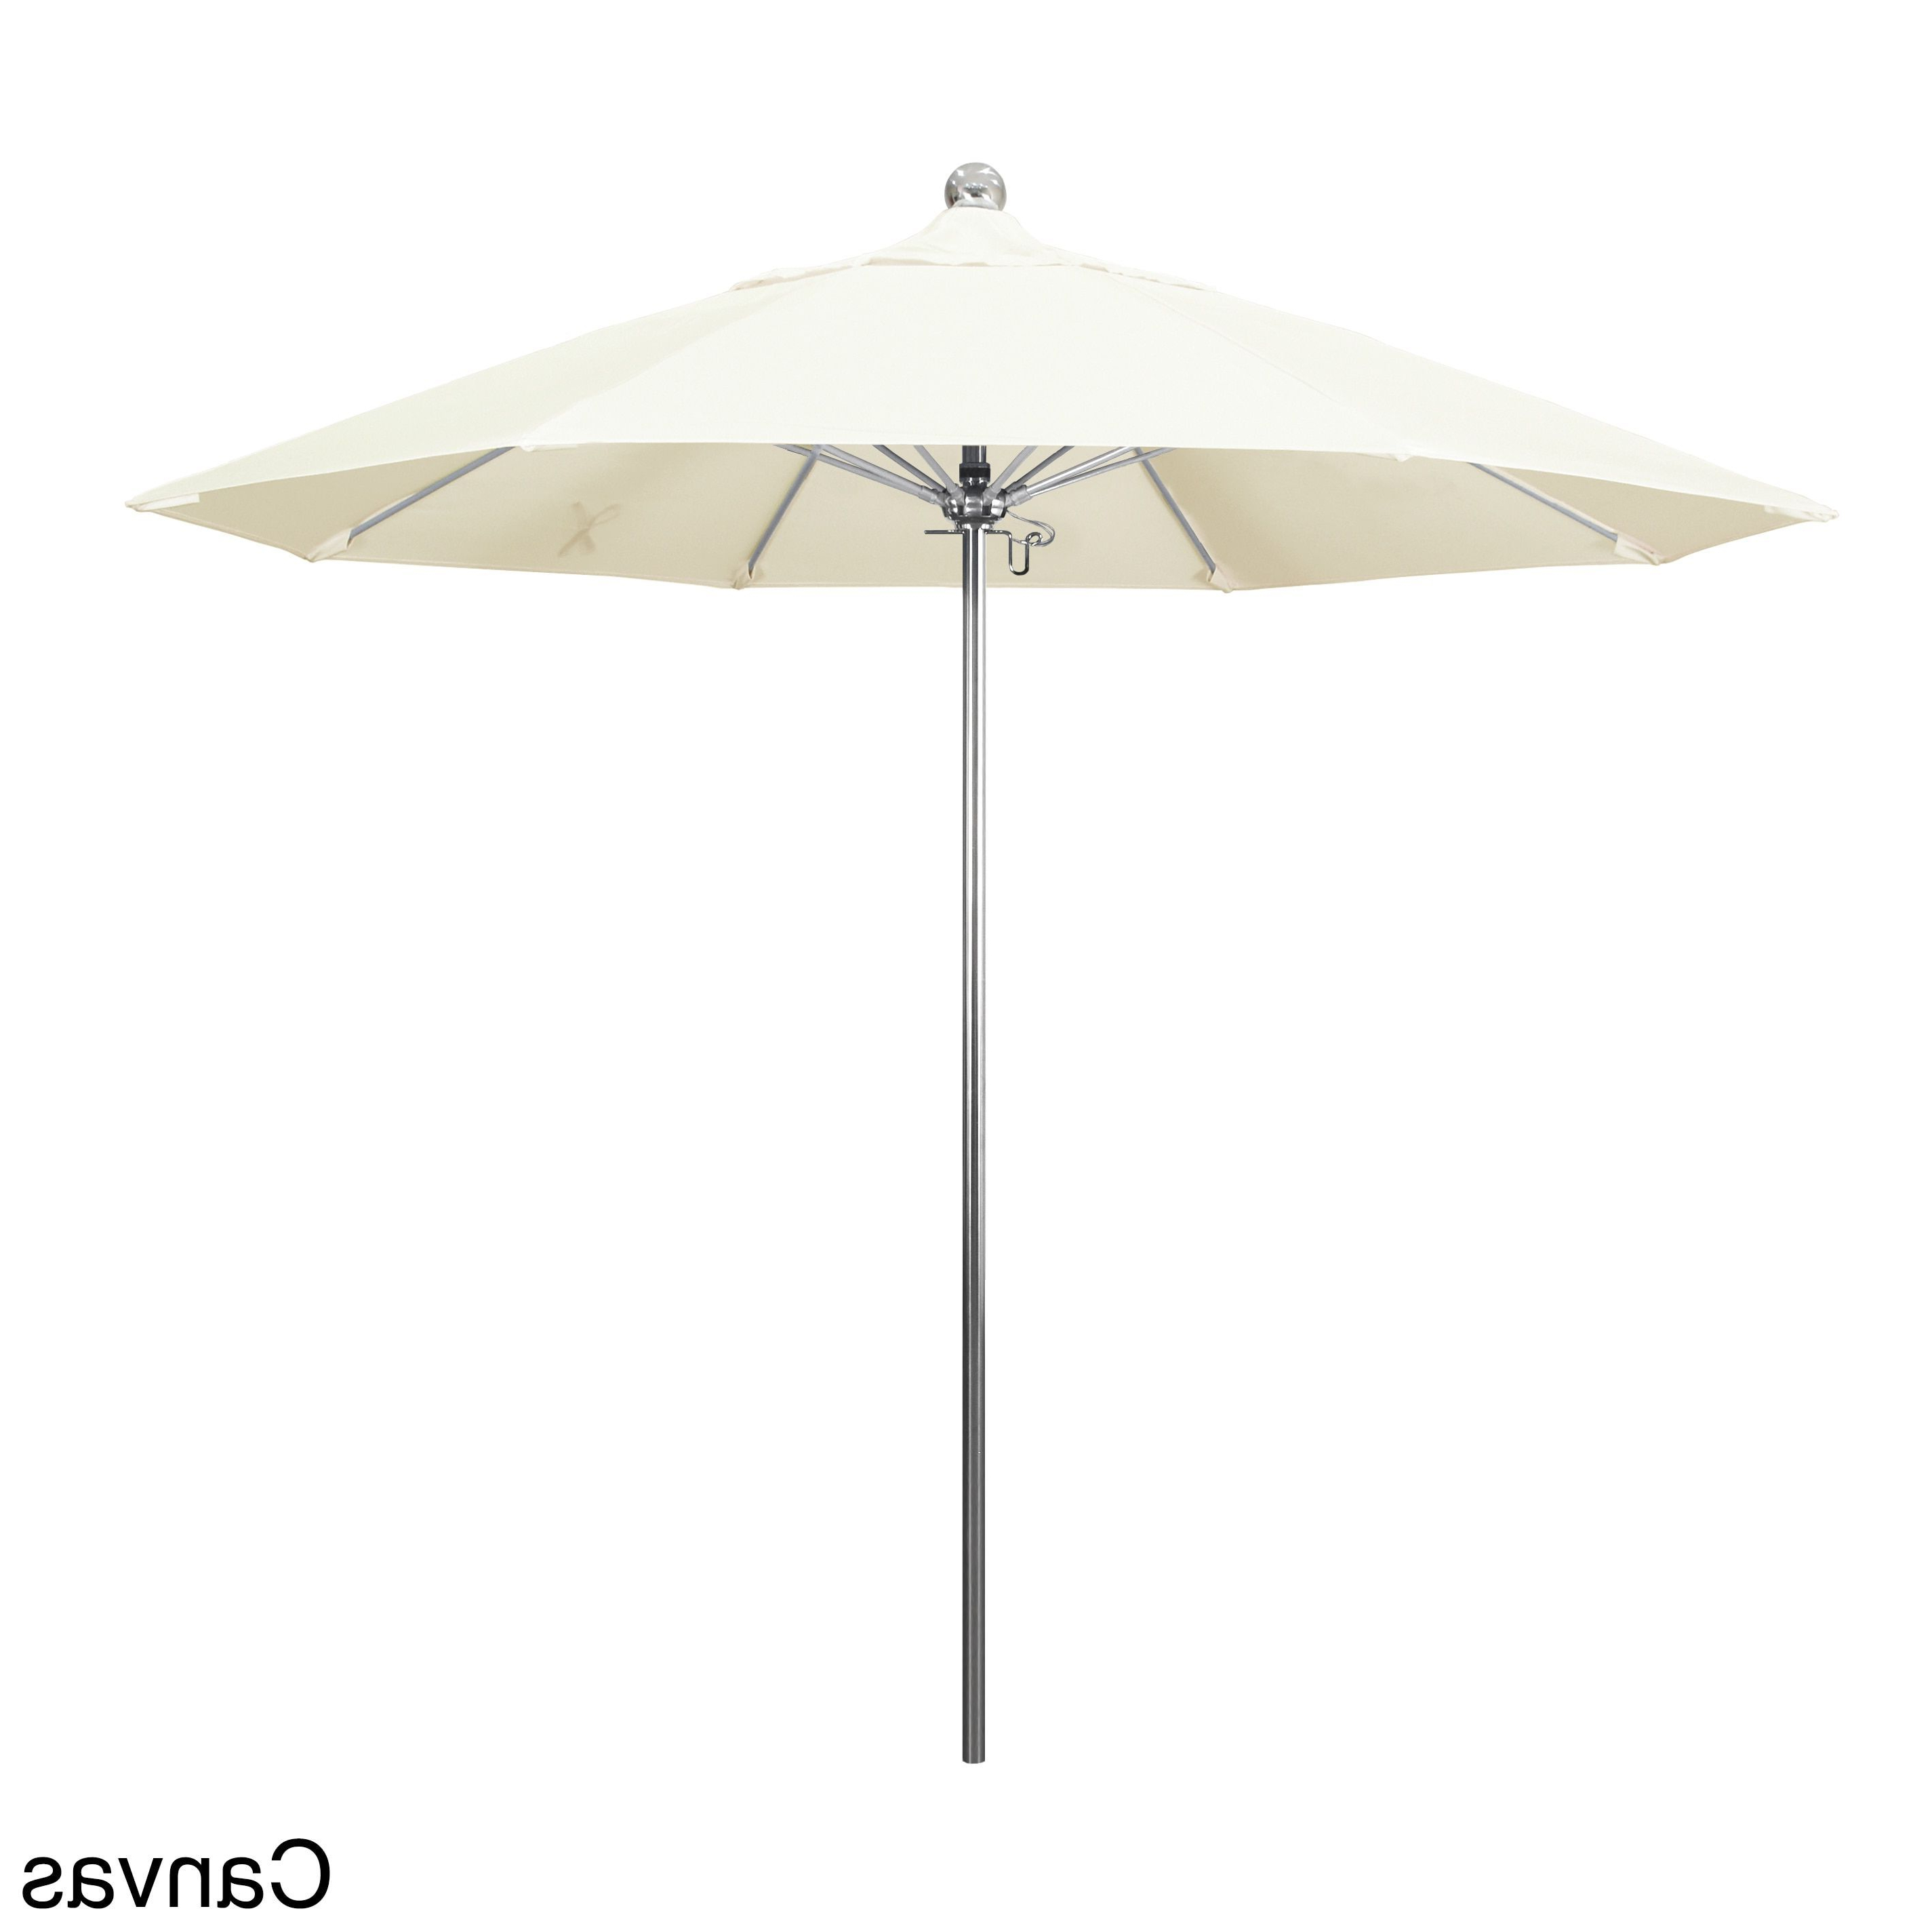 Most Recently Released California Umbrella 9 Foot Stainless Steel Market Umbrella With In Mablethorpe Cantilever Umbrellas (Gallery 15 of 20)